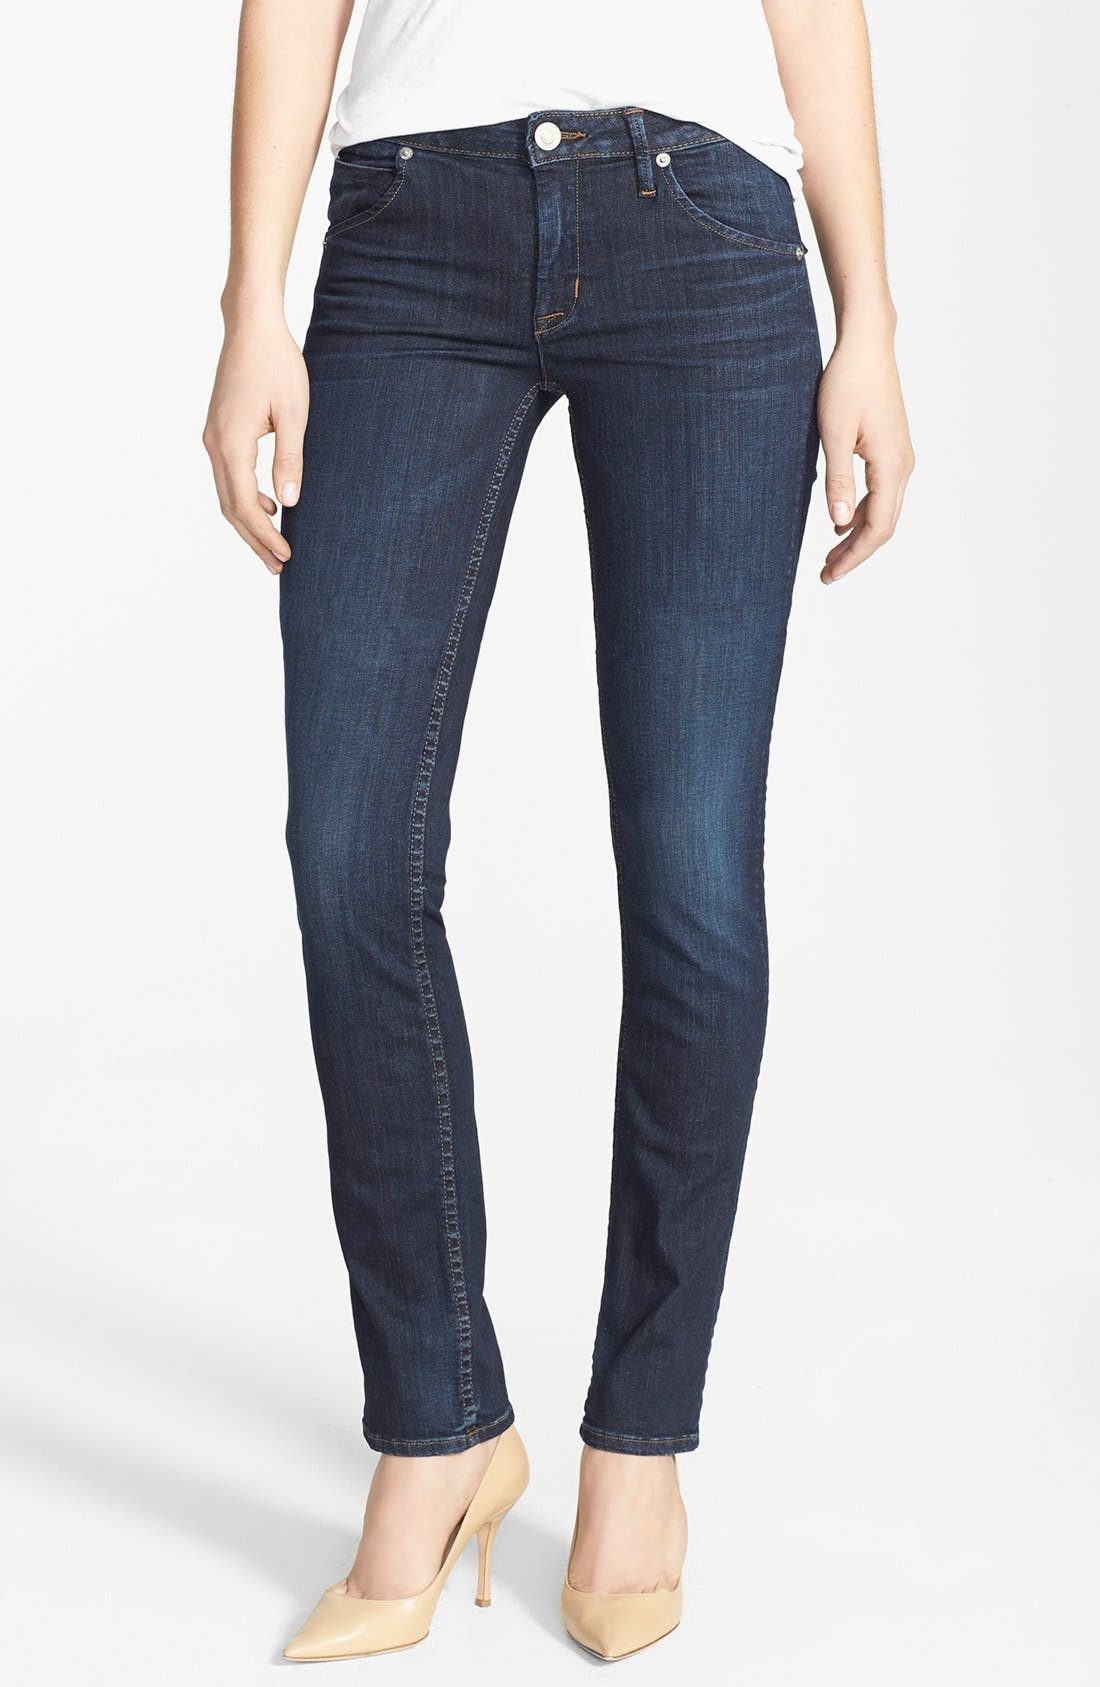 Alternate Image 1 Selected - Hudson Jeans 'Carly' Straight Leg Jeans (Shirley)